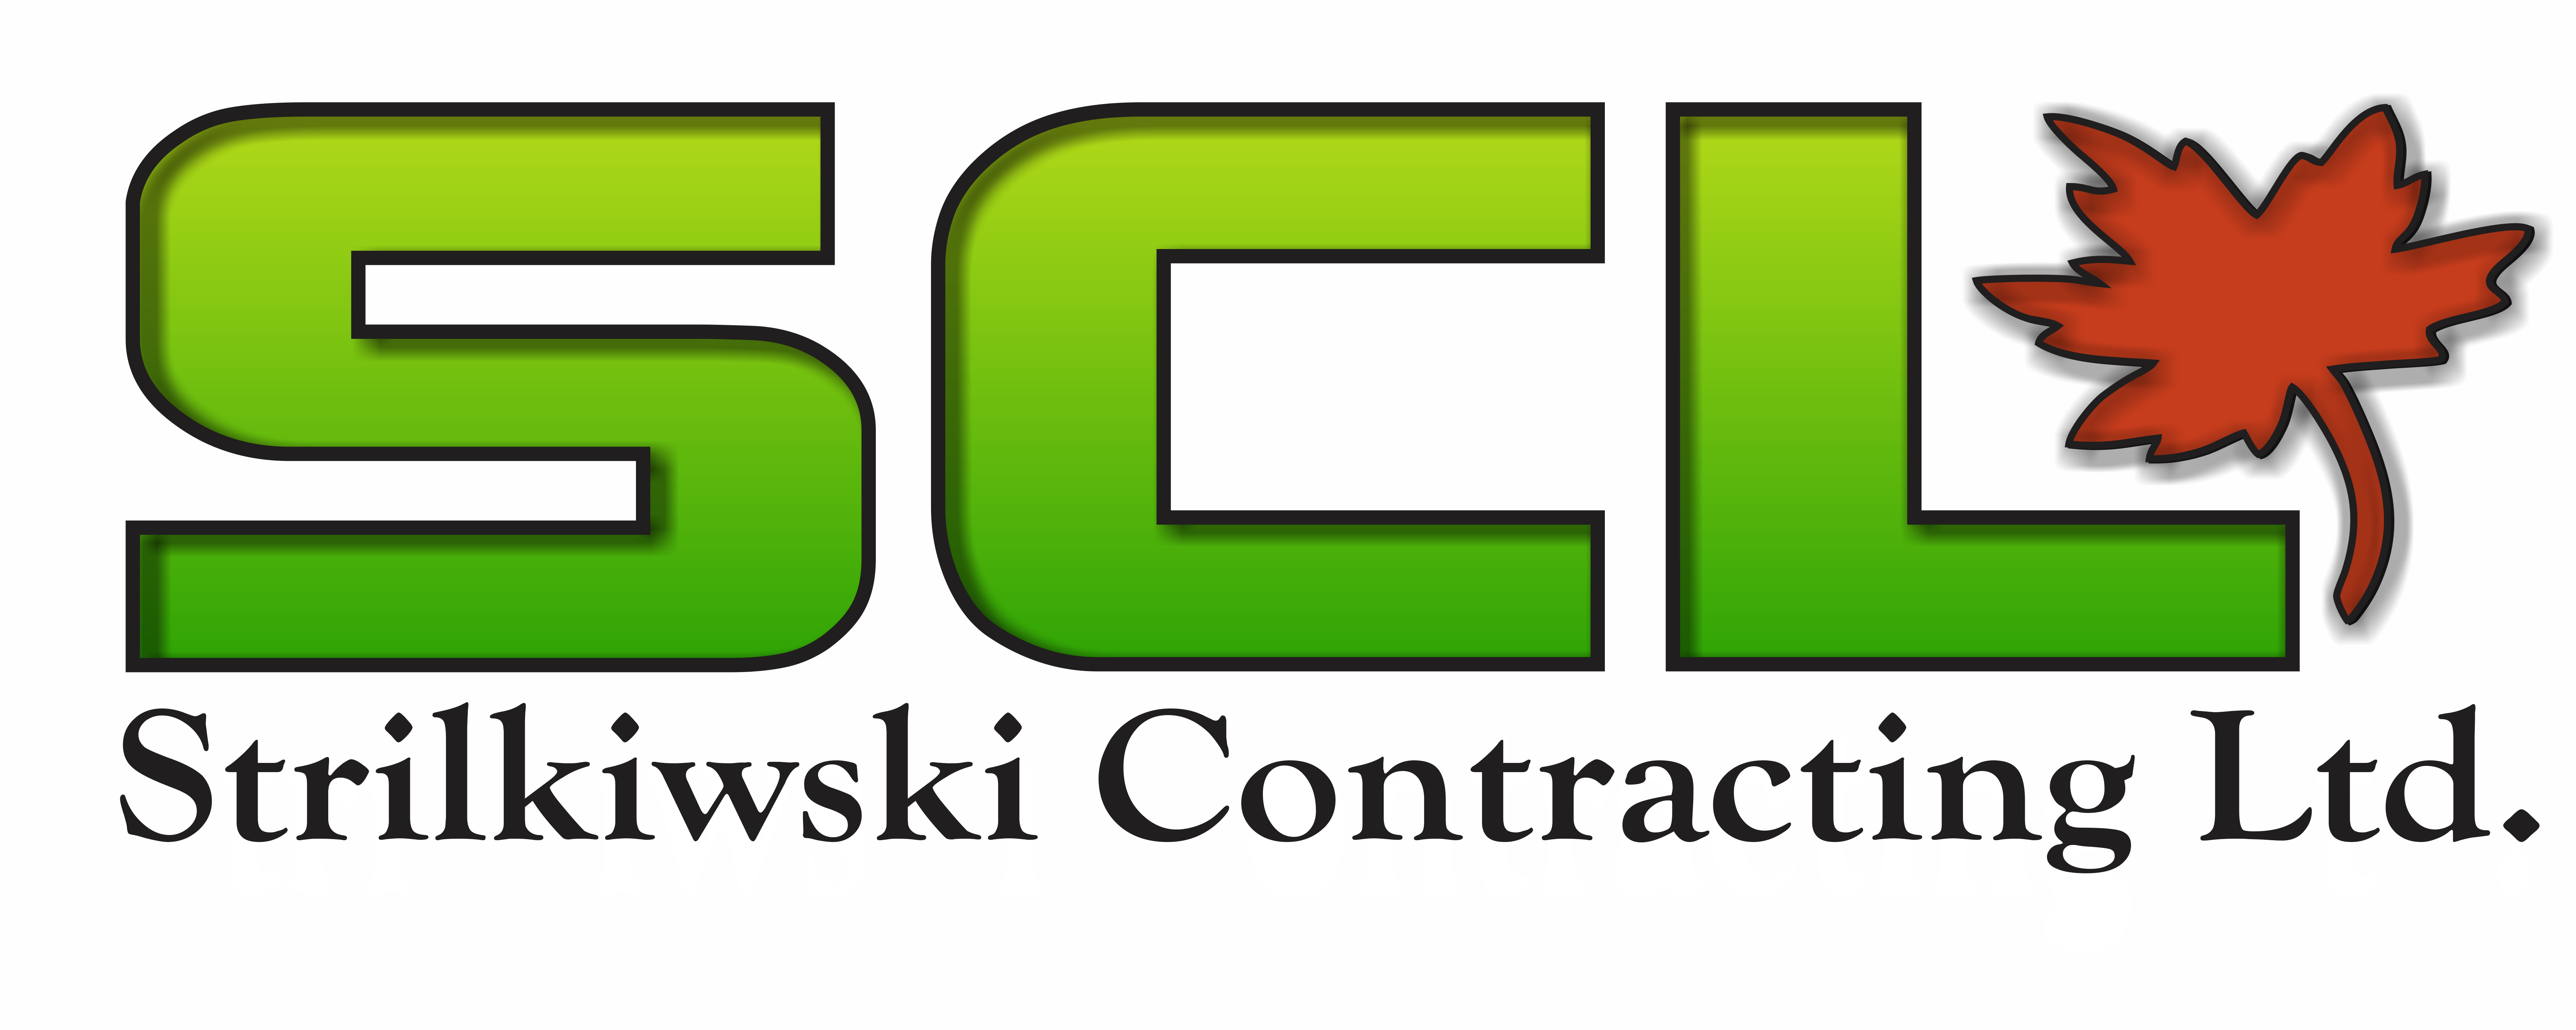 Strilkiwski Contracting Ltd.